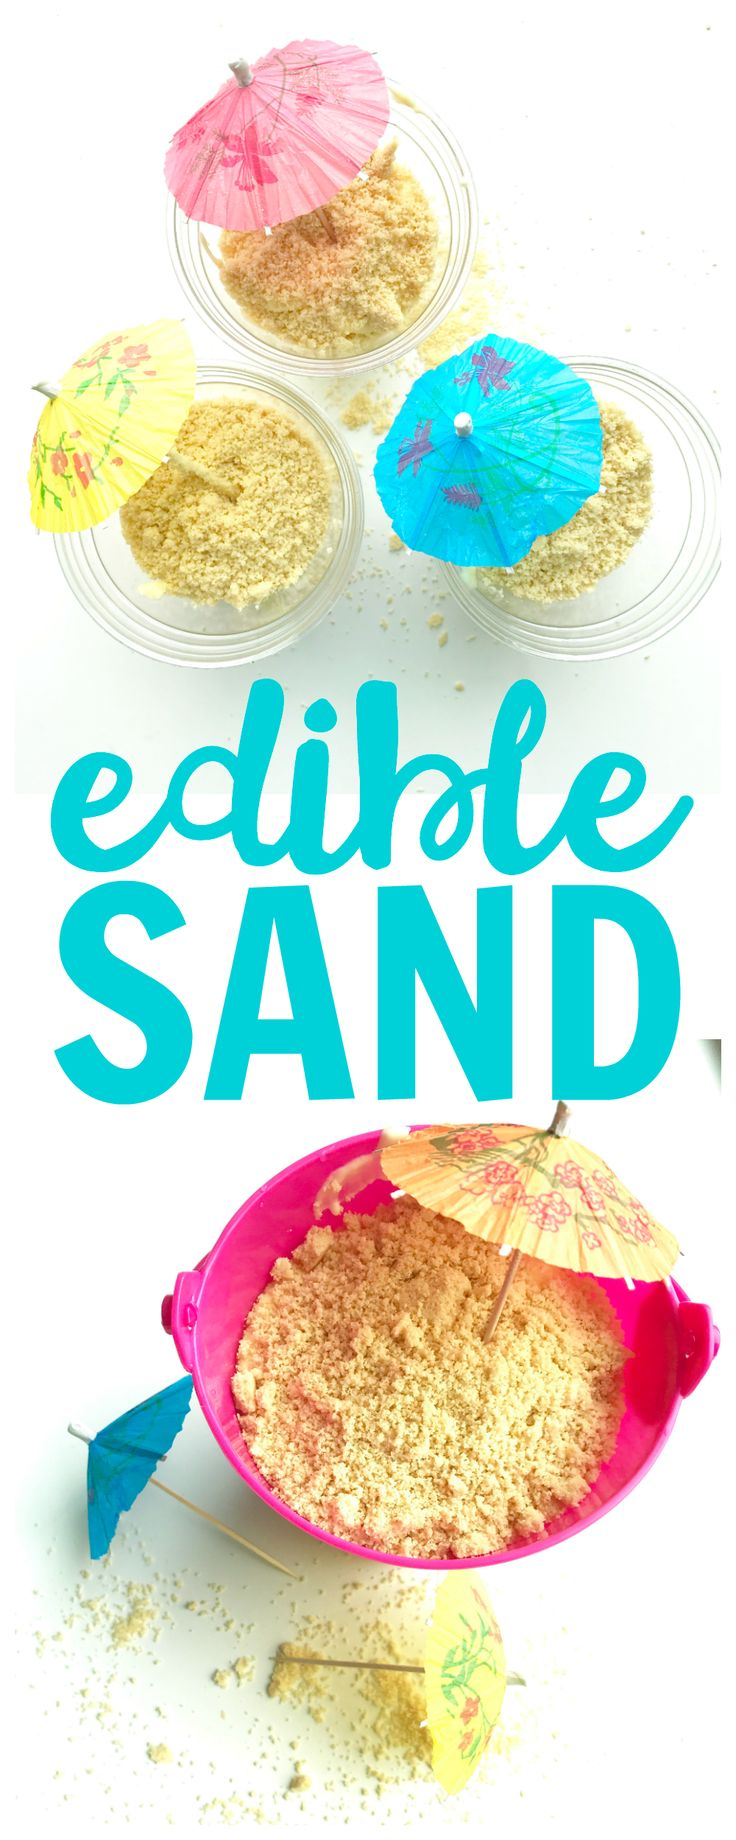 This Edible Sand is a yummy summer dessert or treat for a special occasion!